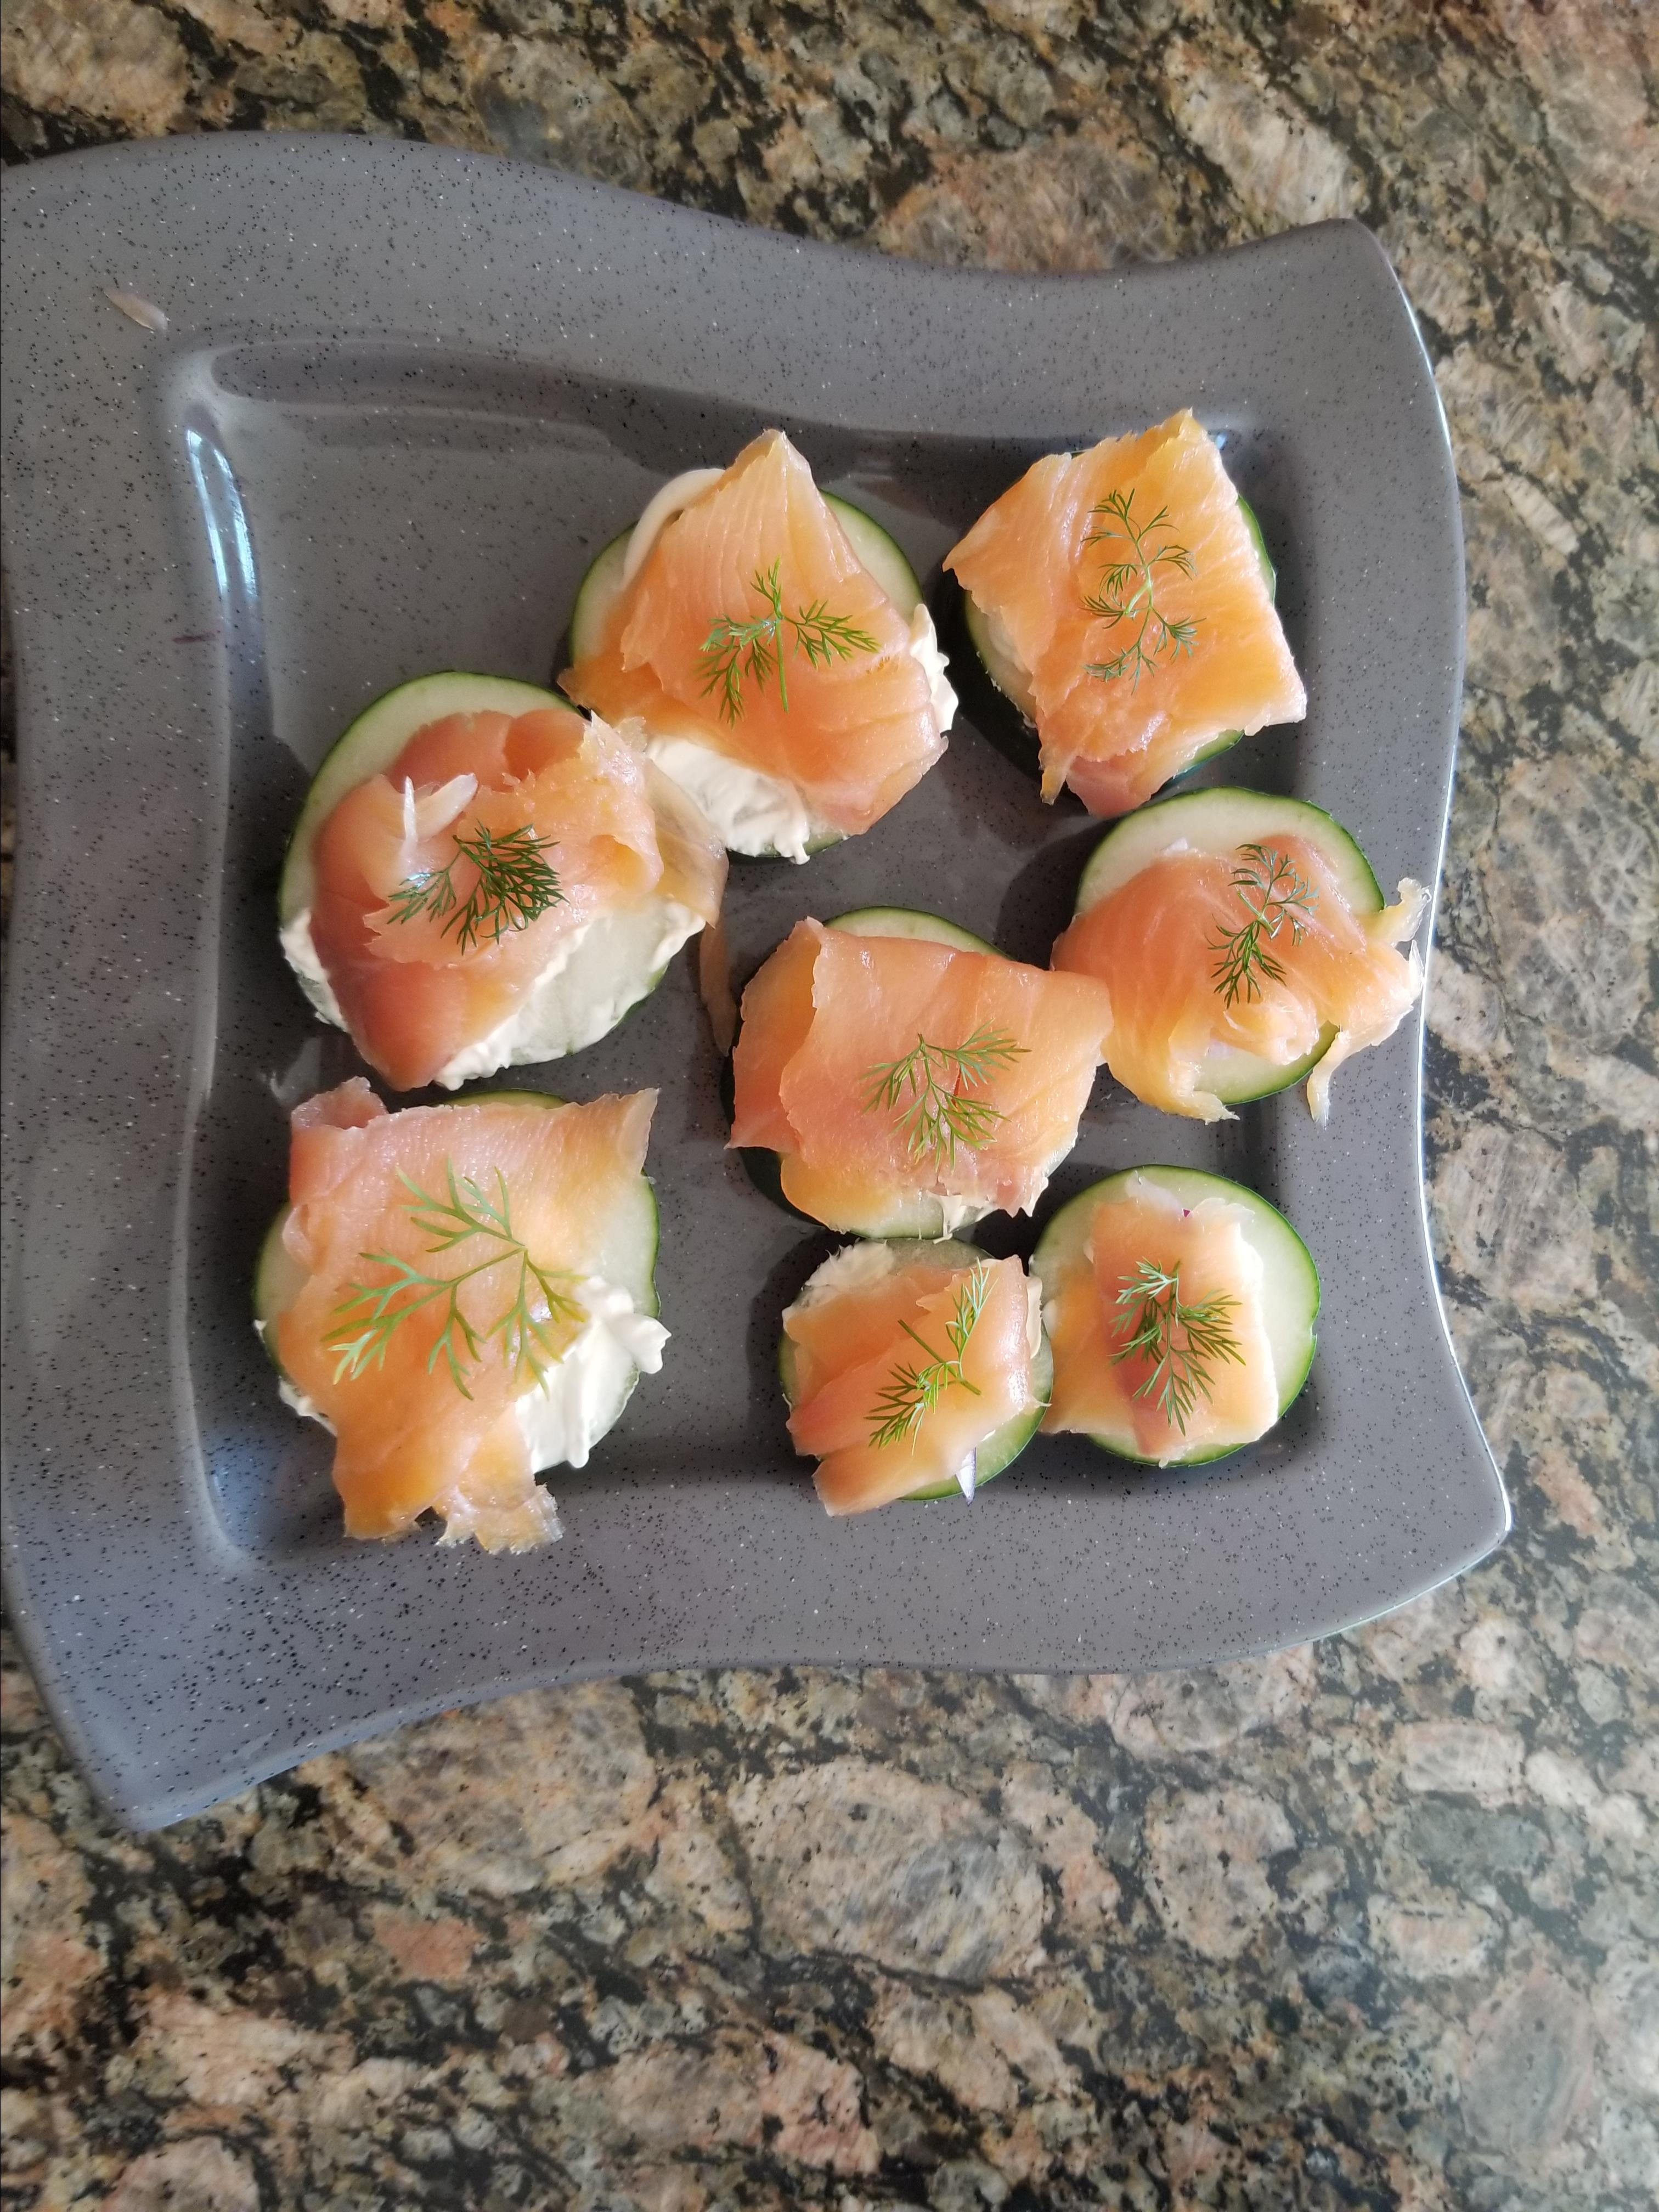 Cucumber Cups with Dill Cream and Smoked Salmon JennyJen2009